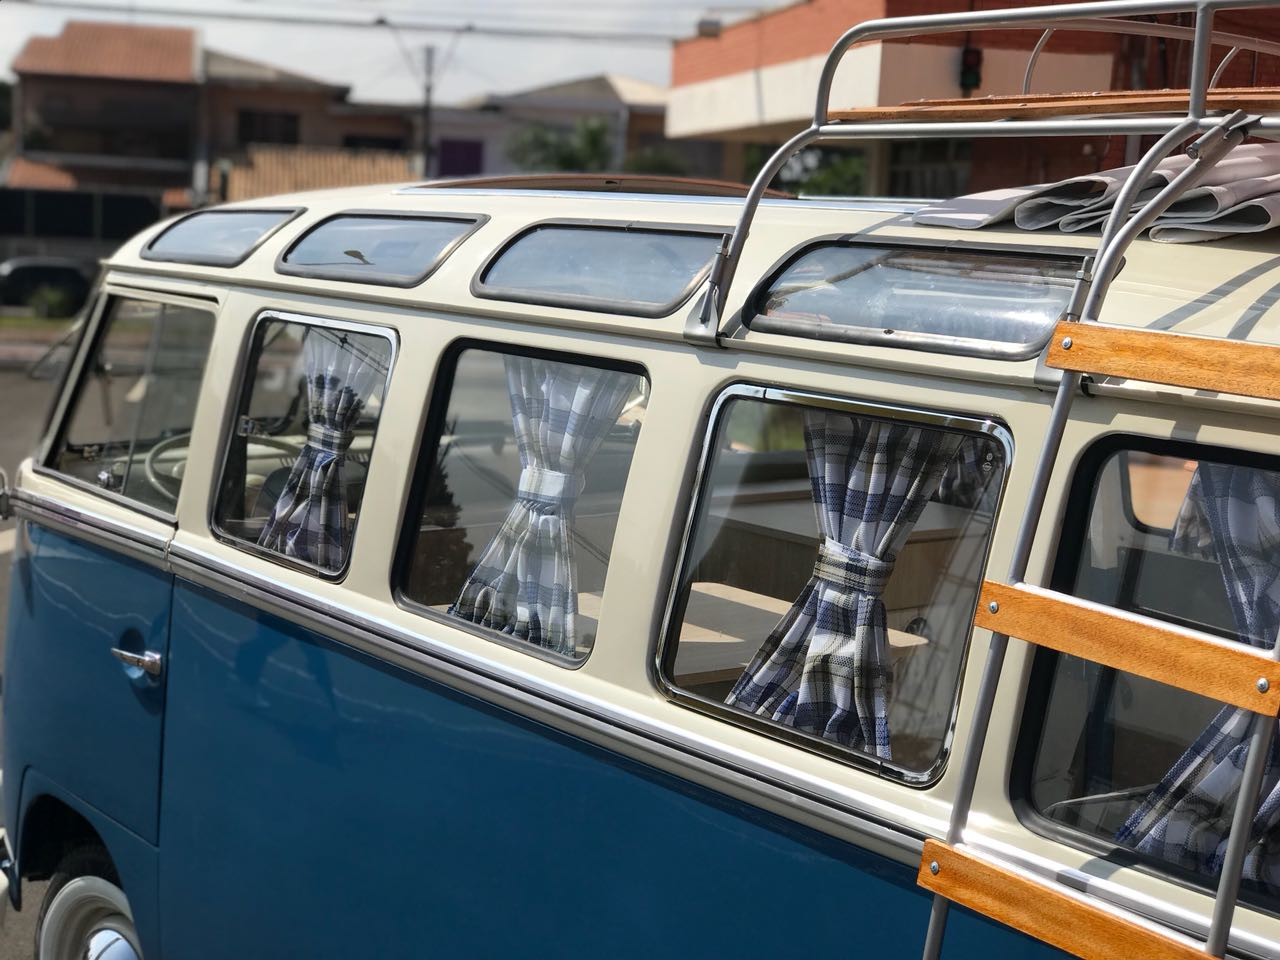 VW-23-windows-2